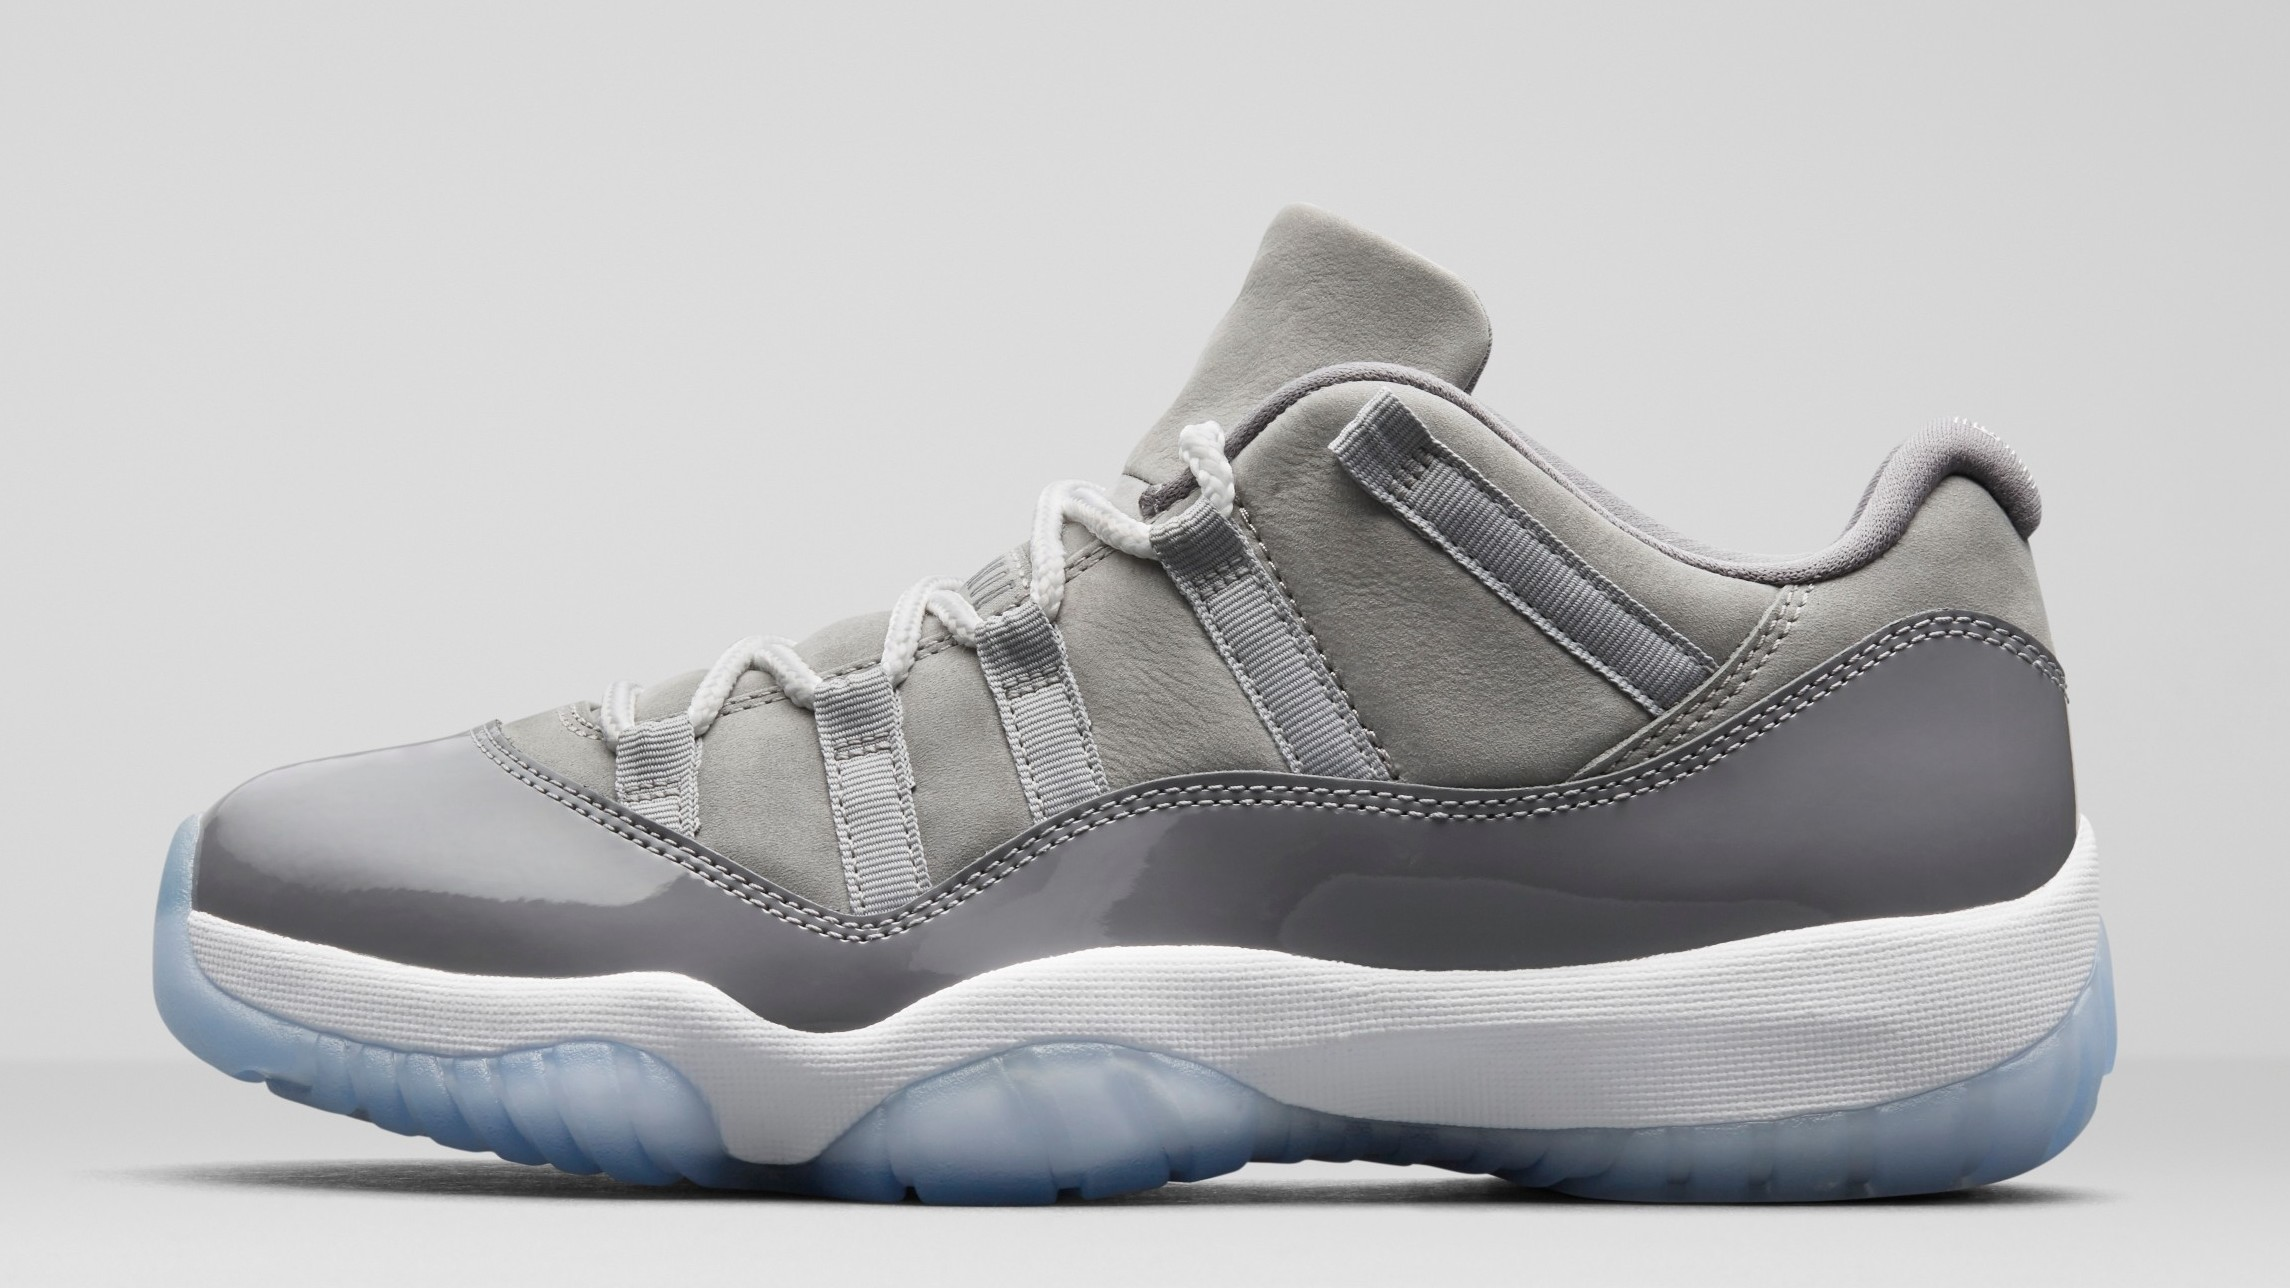 4ec8df71625a Air Jordan 11 XI Low Cool Grey 2018 Release Date 528895-003